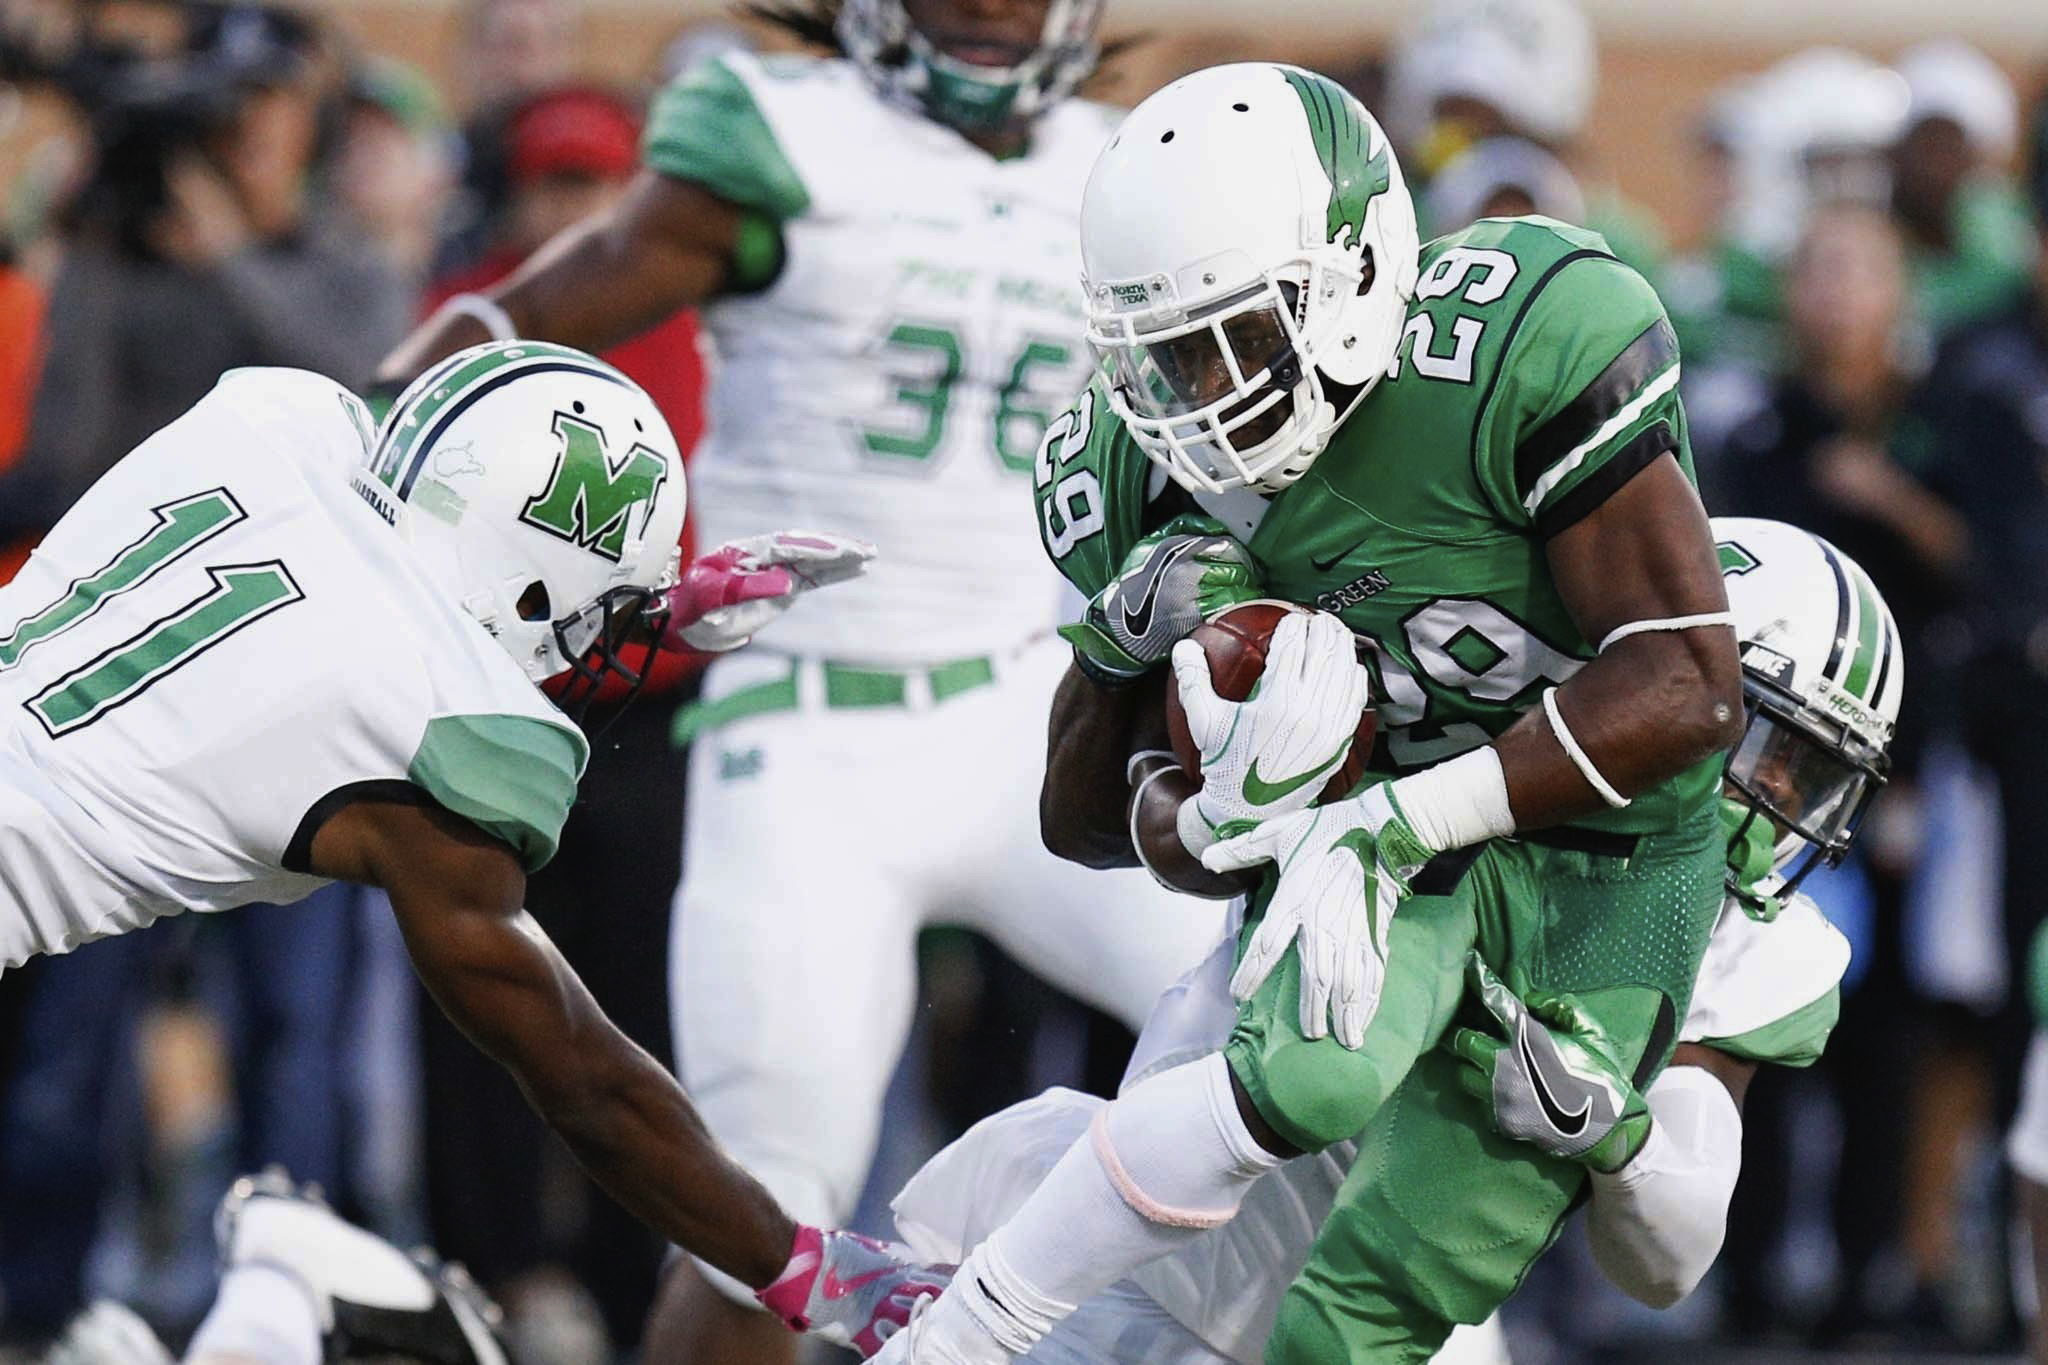 FILE- In this Oct. 8, 2016, file photo, North Texas running back Willy Ivery (29) rushes the ball, while Marshall safety C.J. Reavis (1) wraps him from behind in an NCAA college football game in Denton, Texas. North Texas will play in the Heart of Dallas